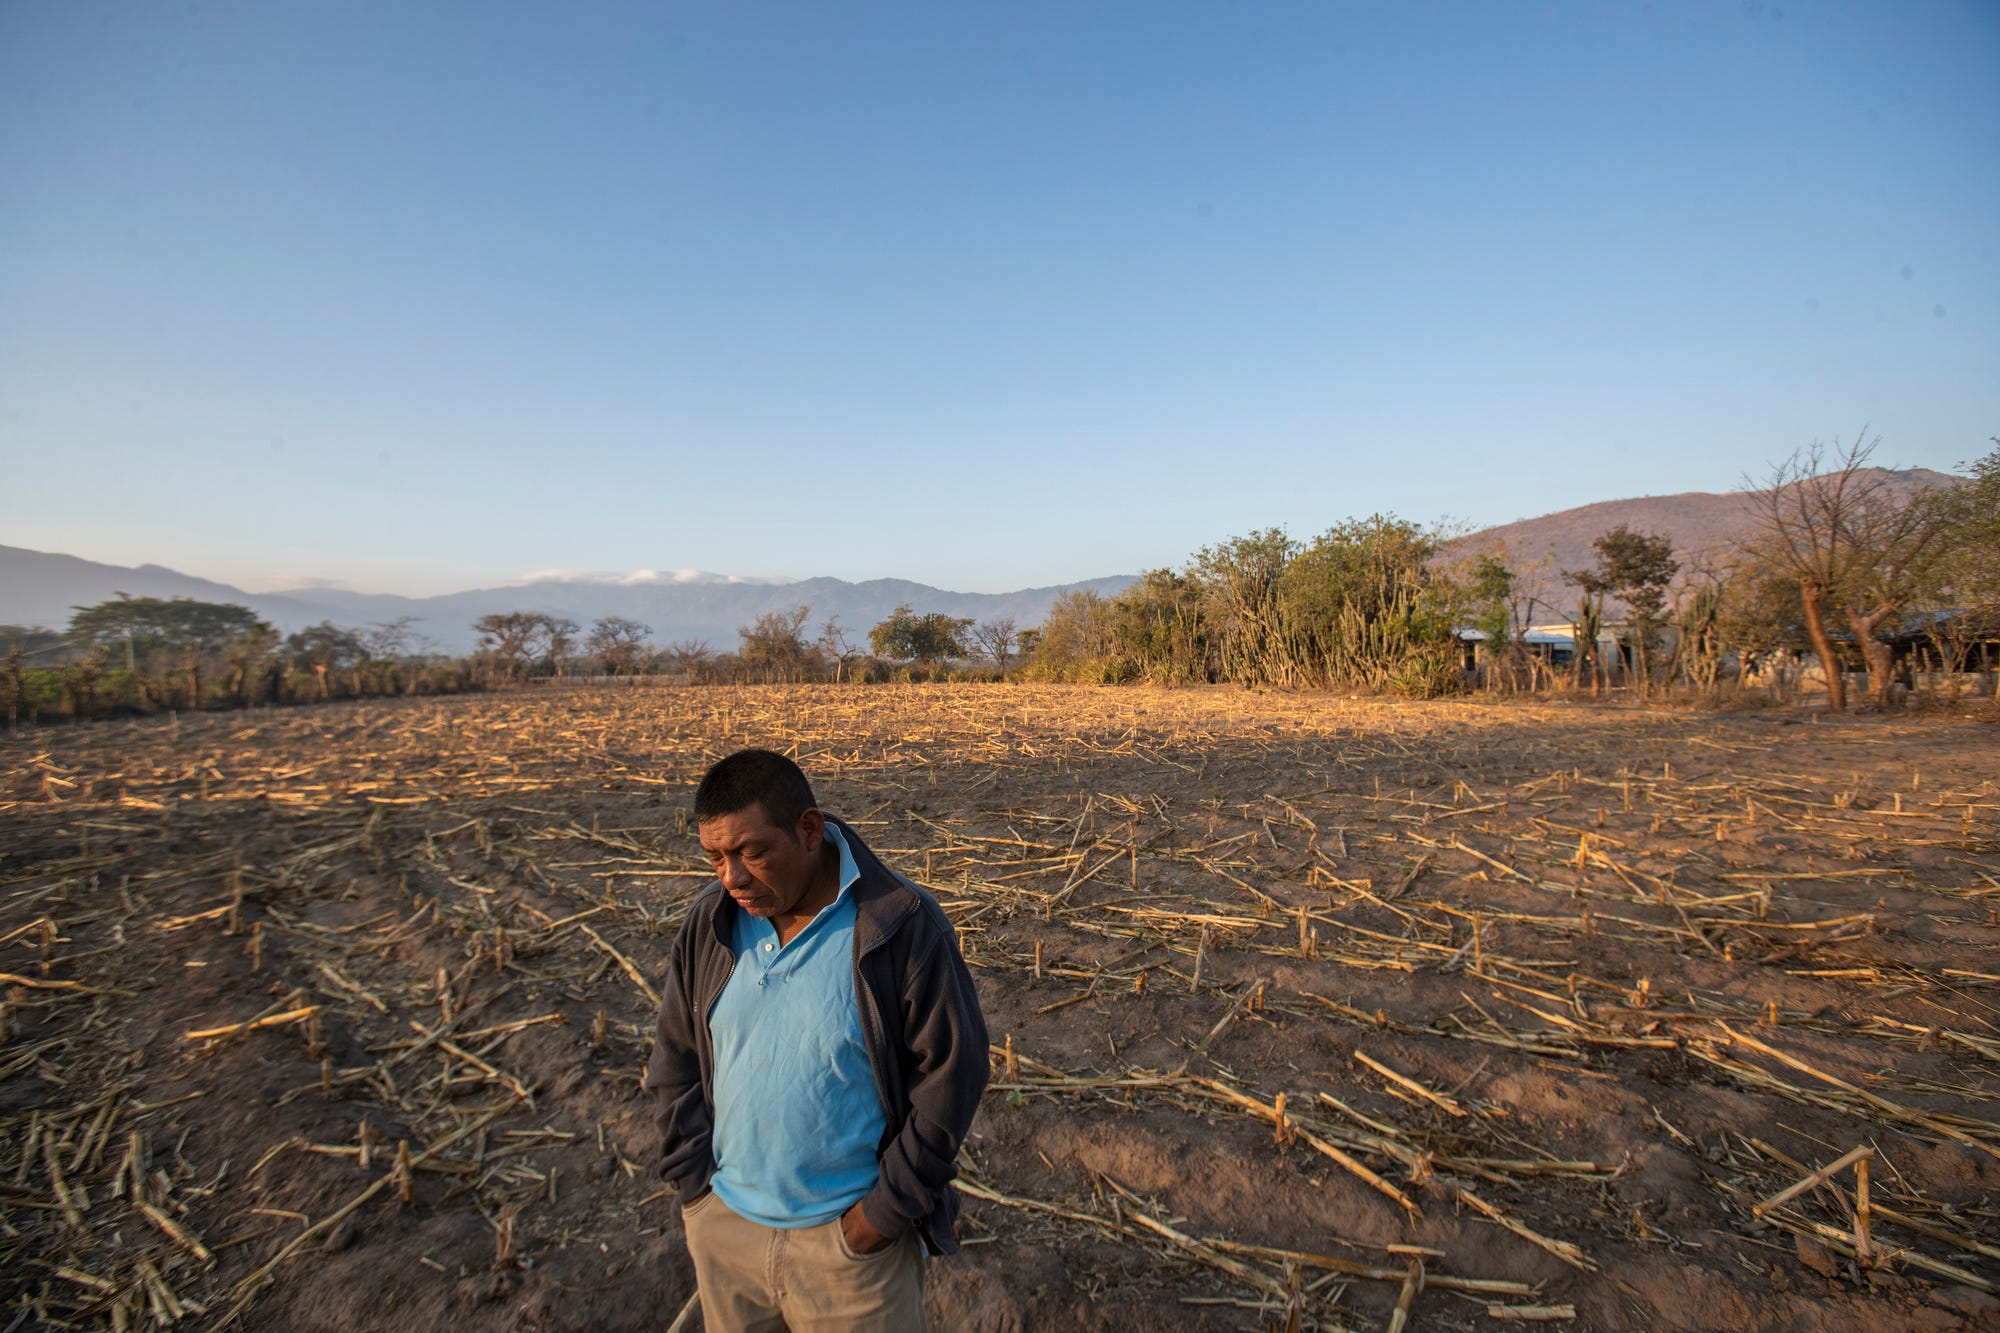 Francisco Sical lives on a plot of agricultural land in Baja Verapaz, Guatemala.